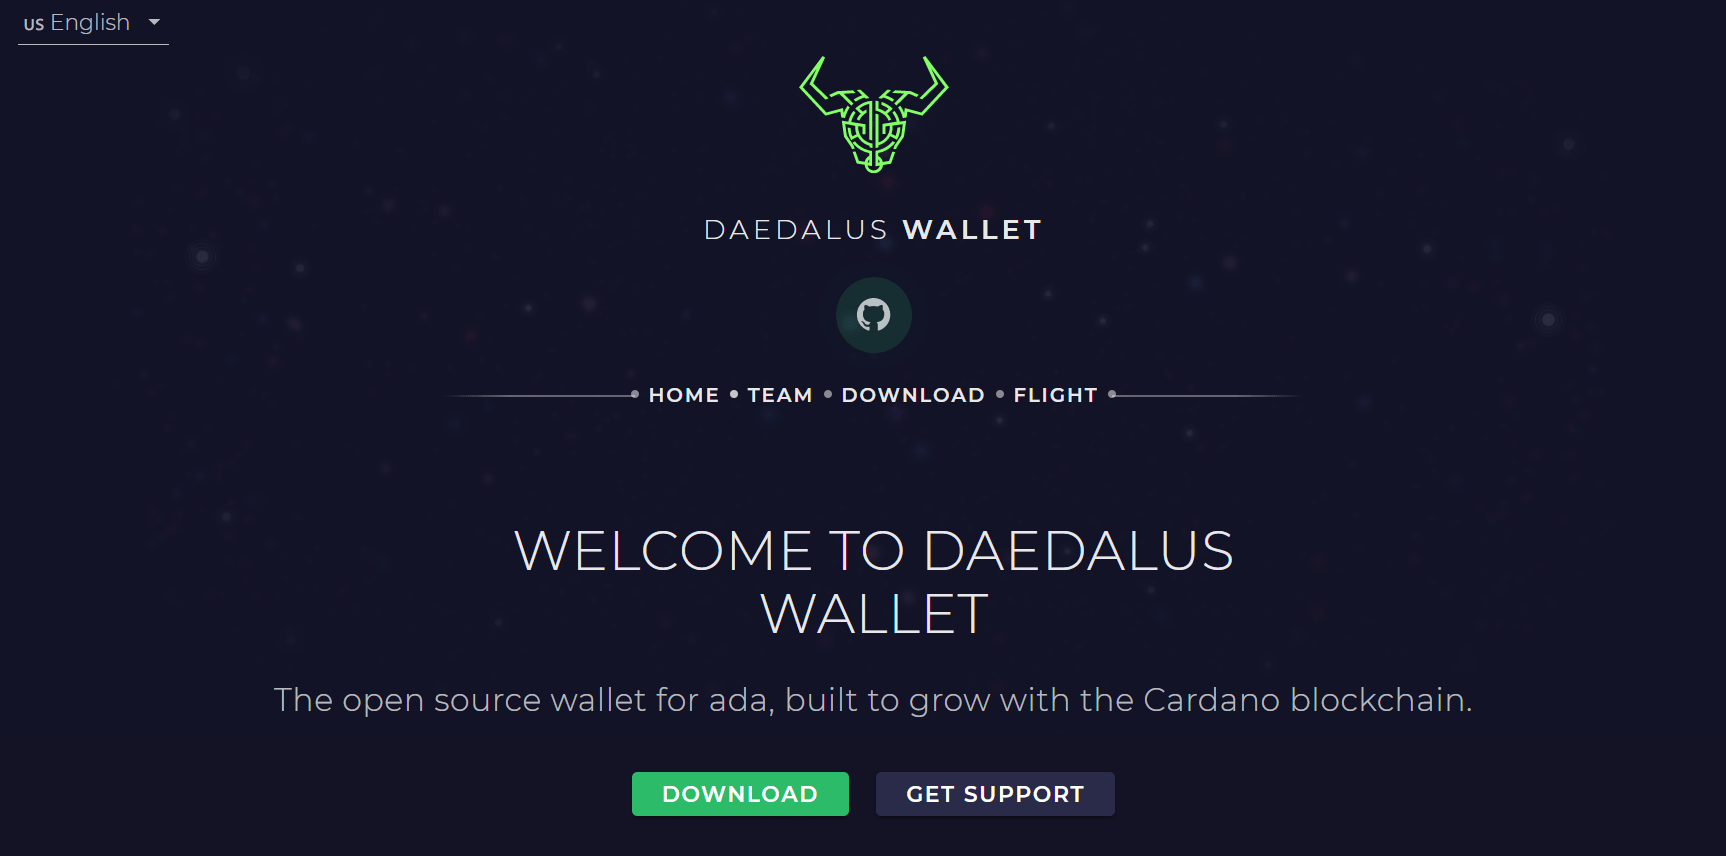 Cardano's native Daedalus wallet